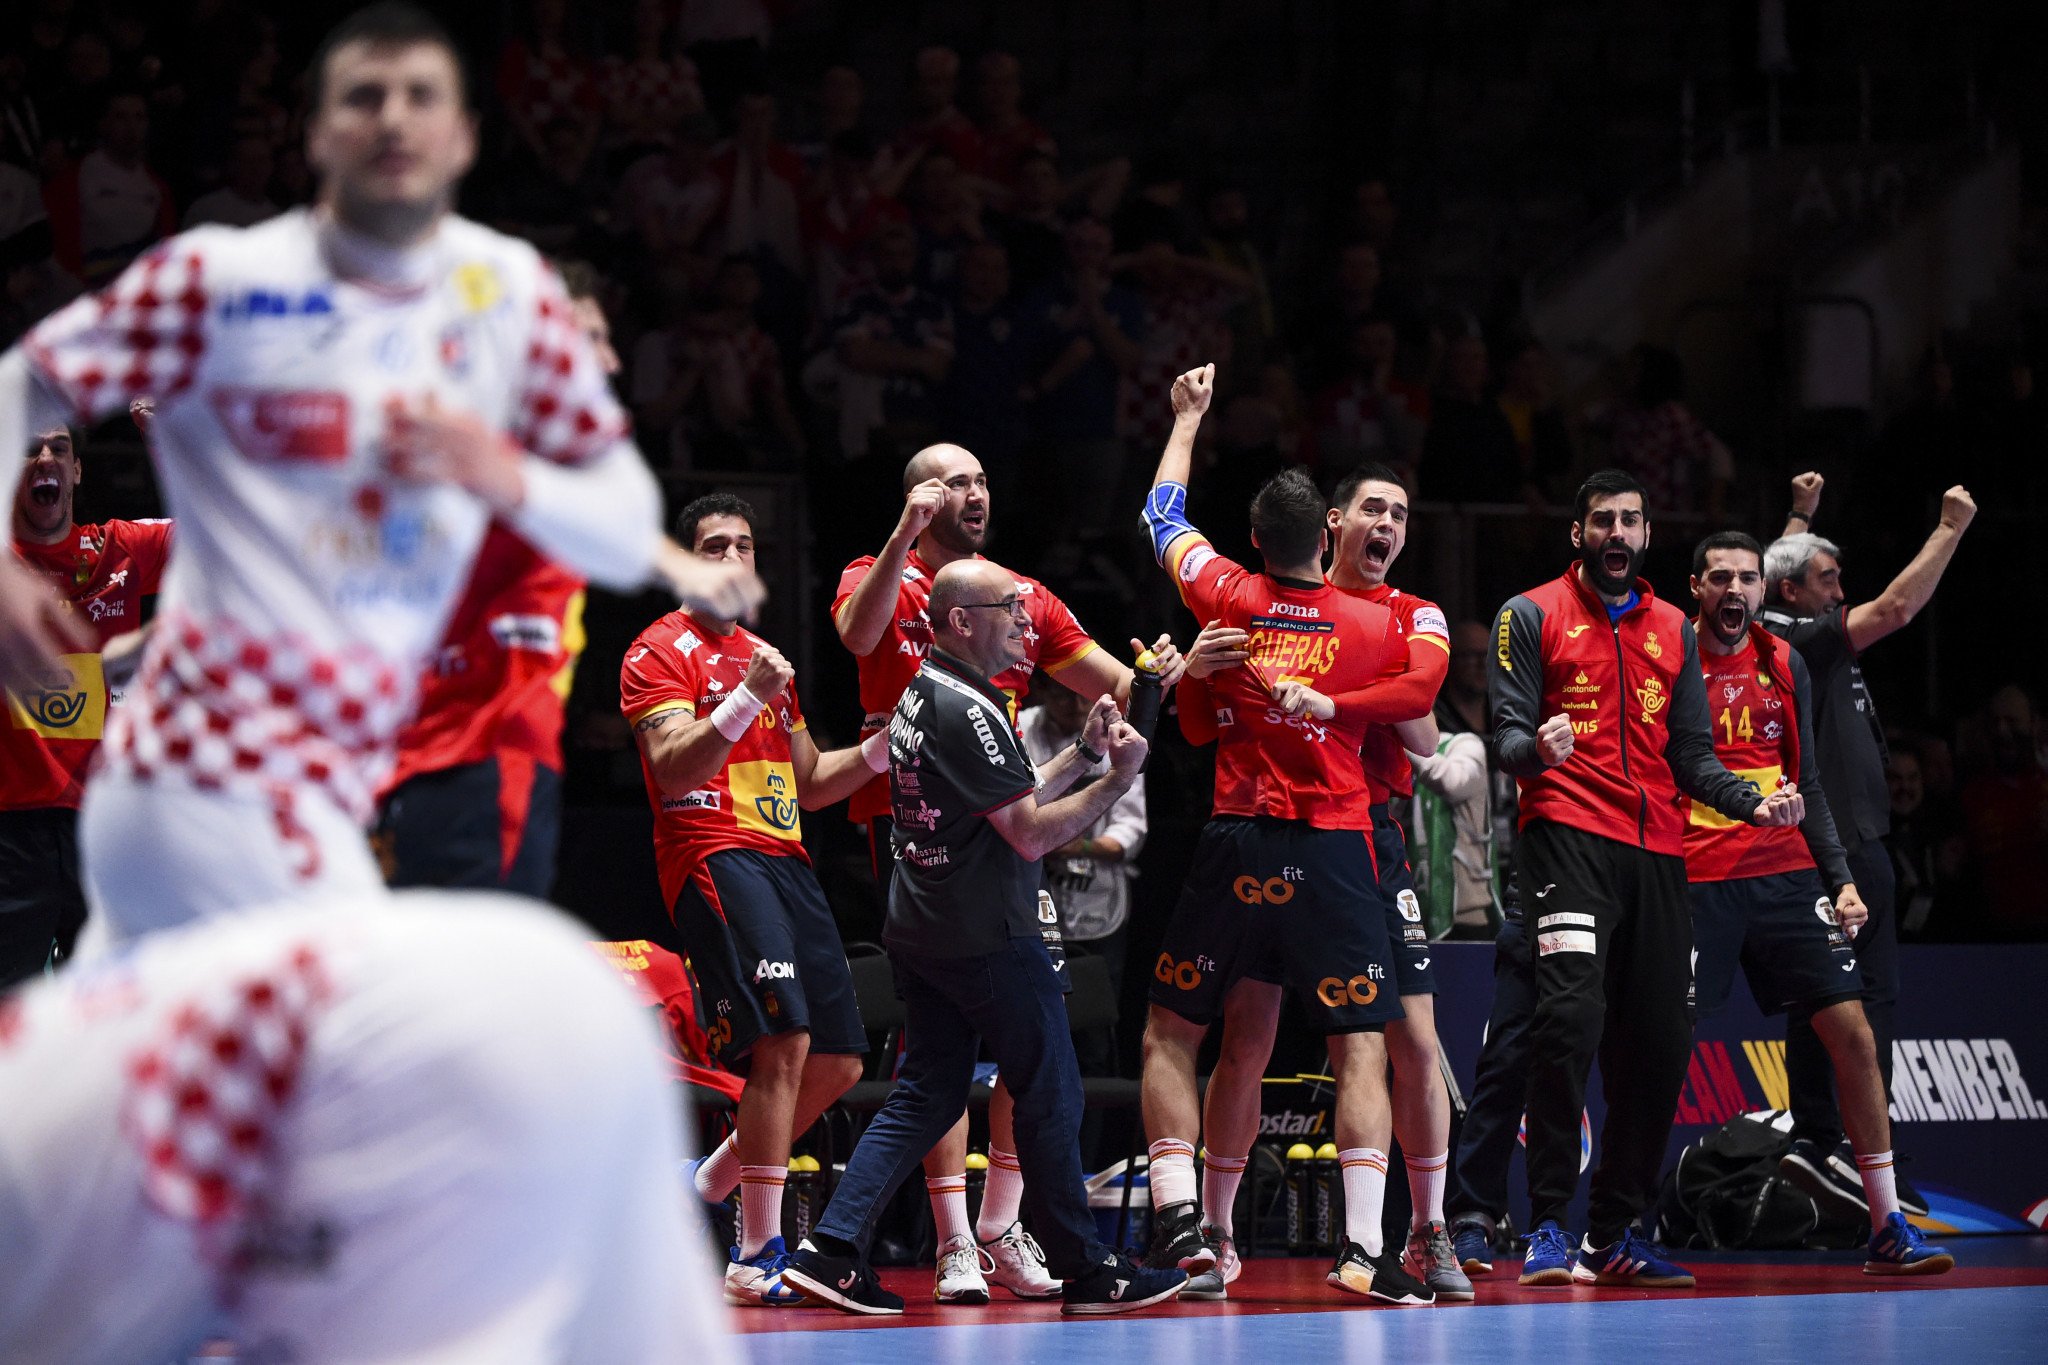 Spain retain European Men's Handball Championship after tight final versus Croatia